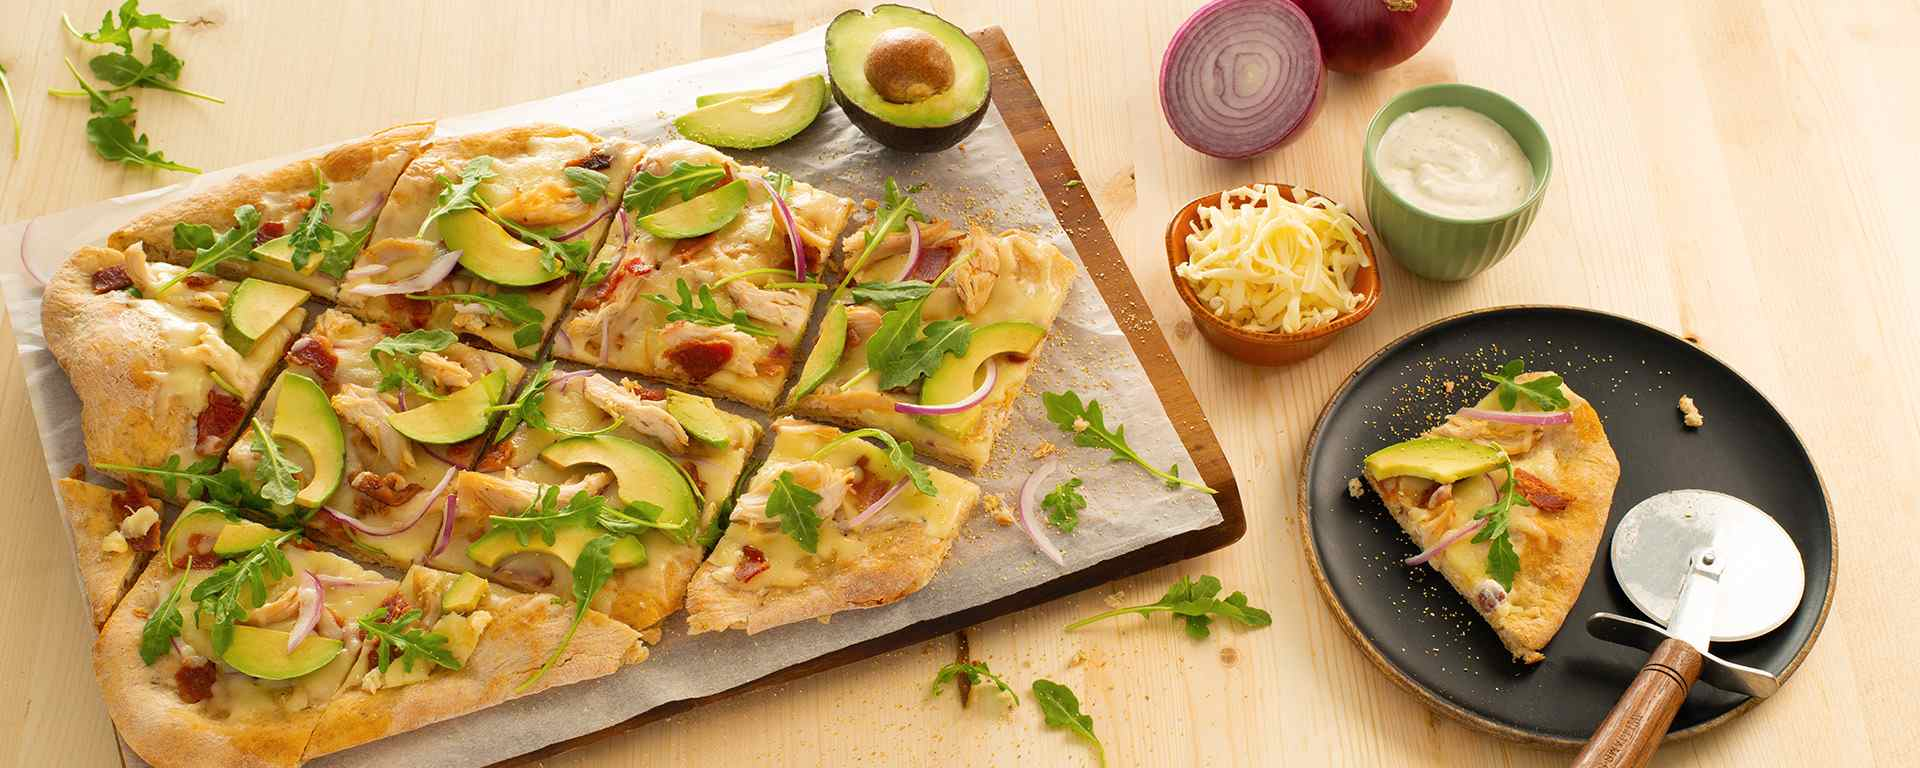 Photo for - California Chicken and Bacon Flatbread with Avocado